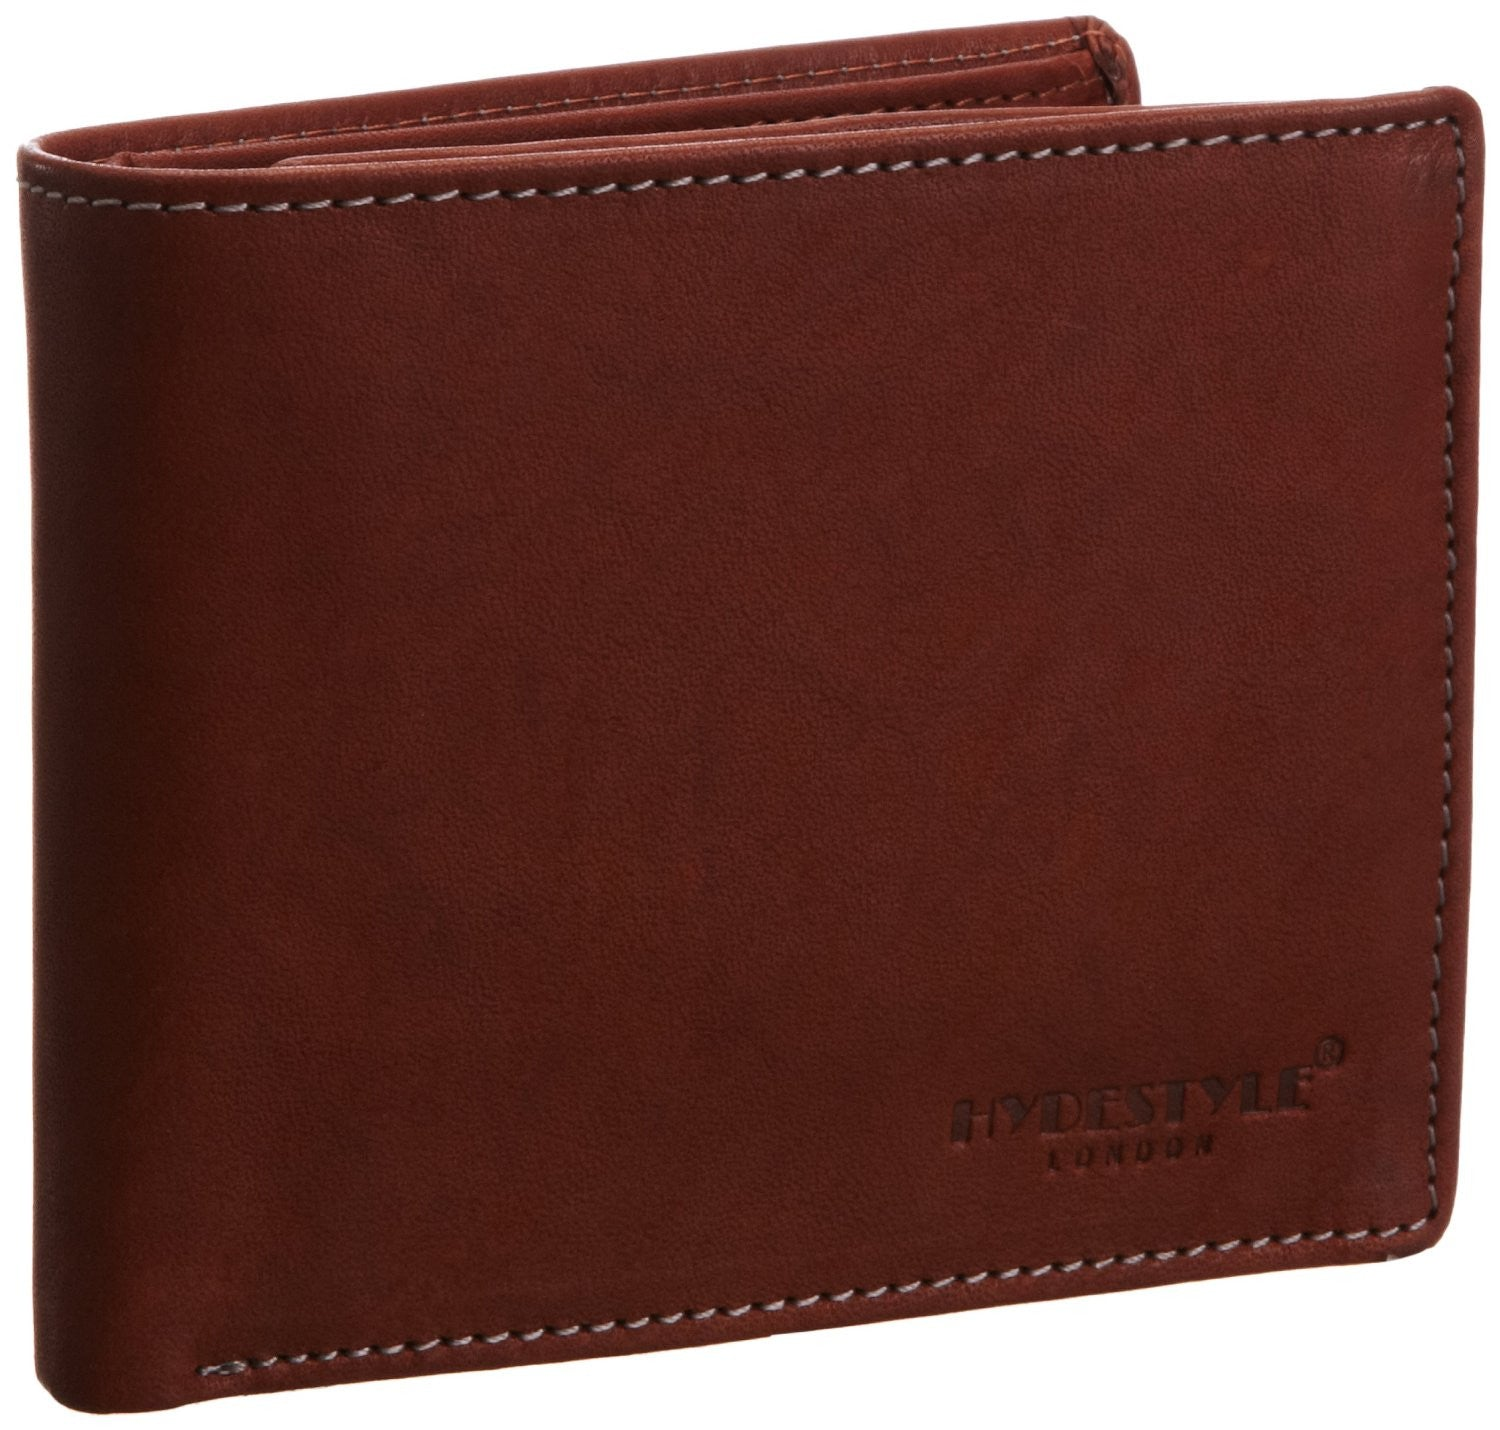 Pratico - mens 17 card leather trifold wallet #GW50 Cognac